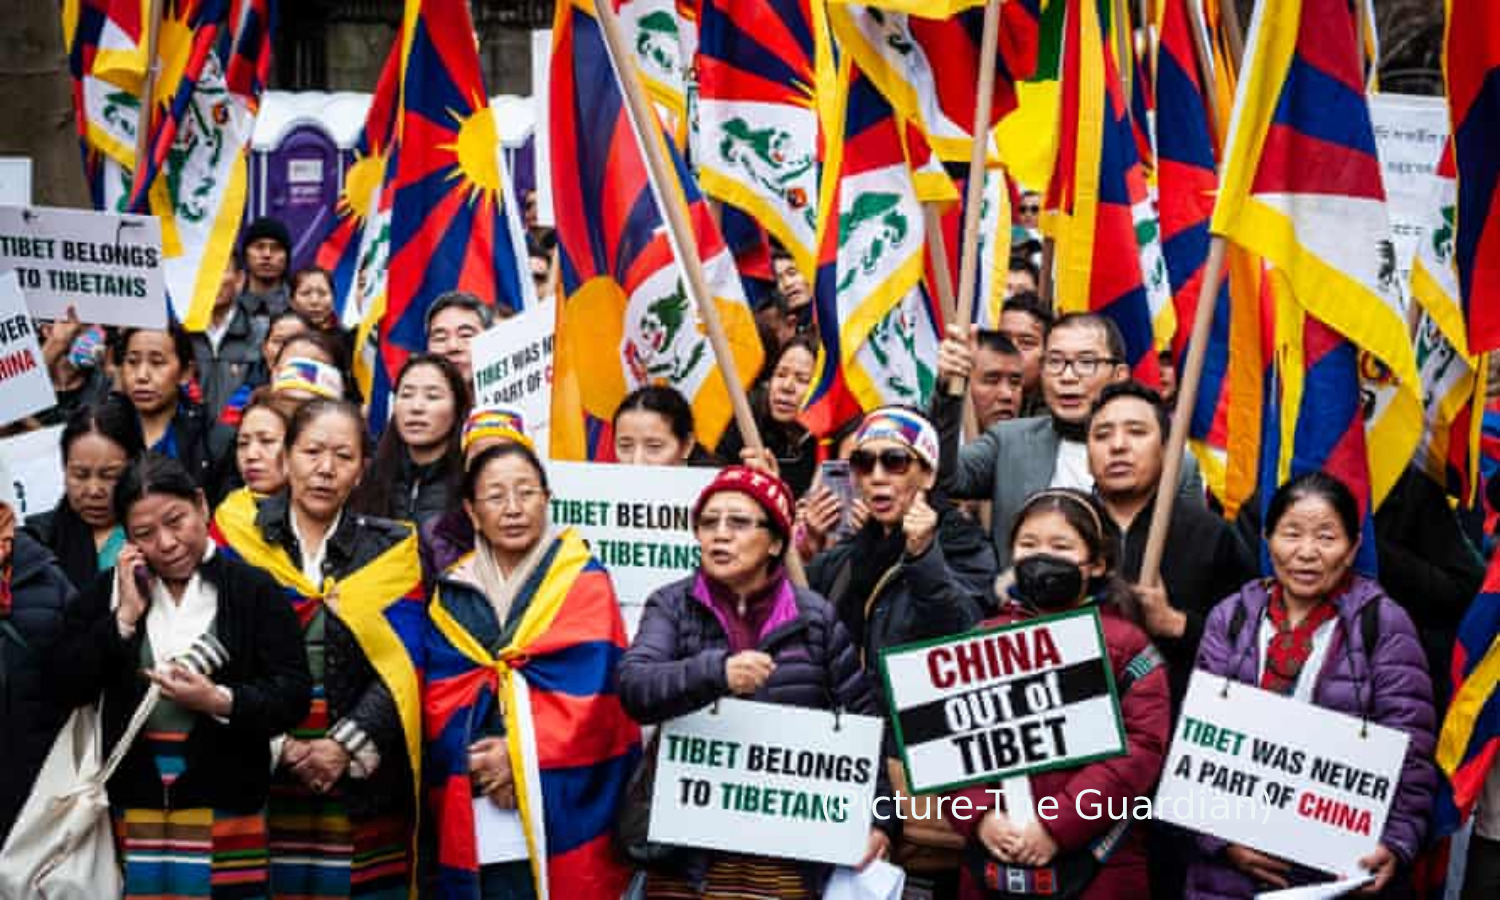 On 9th Annual Tibetan Independence Day A Protest Against Chinese Occupation Outside The Chinese Consulate In New York